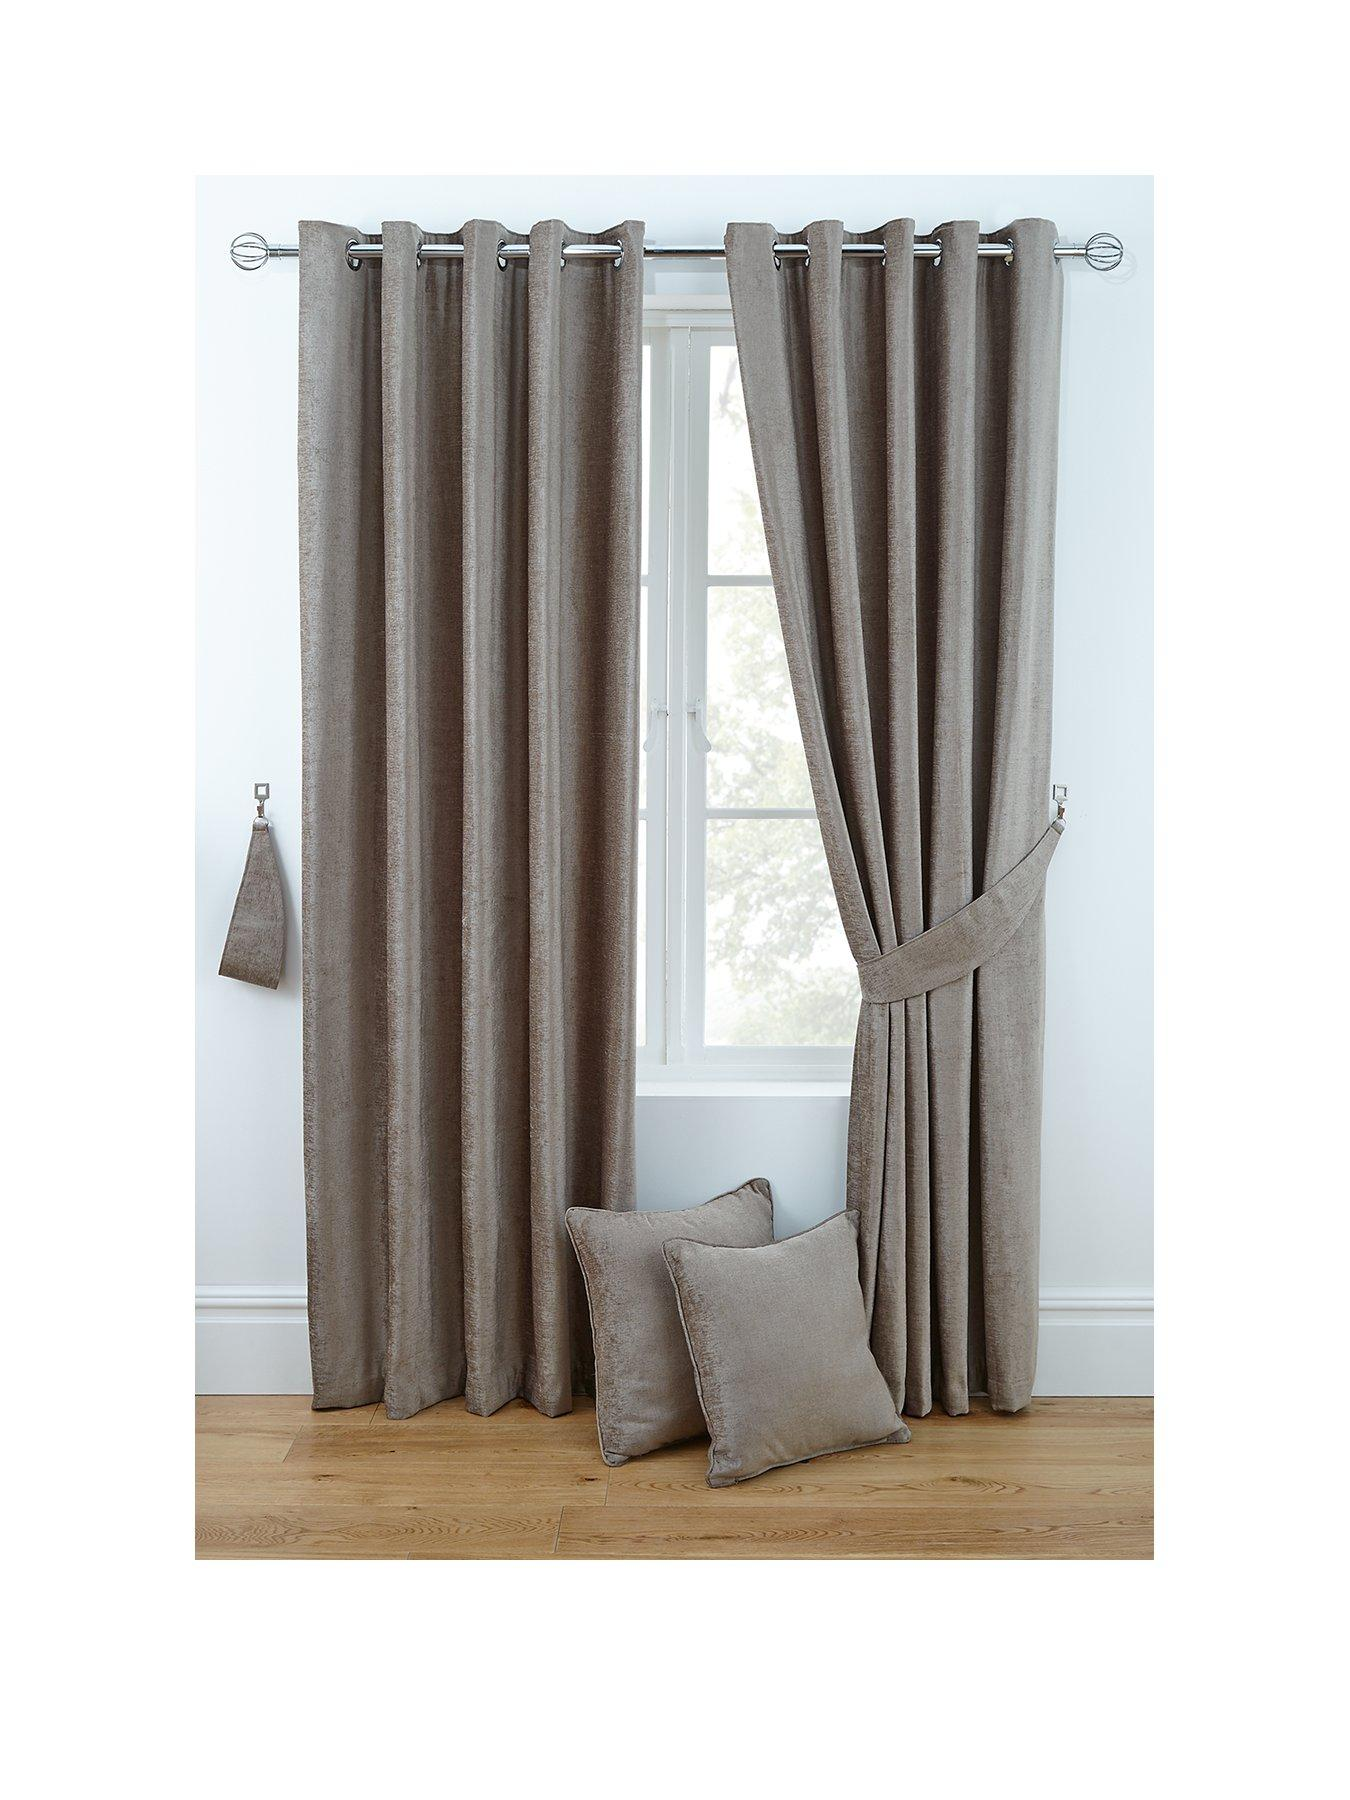 curtains in living room images sofa designs nigeria blinds very co uk luxury chenille eyelet